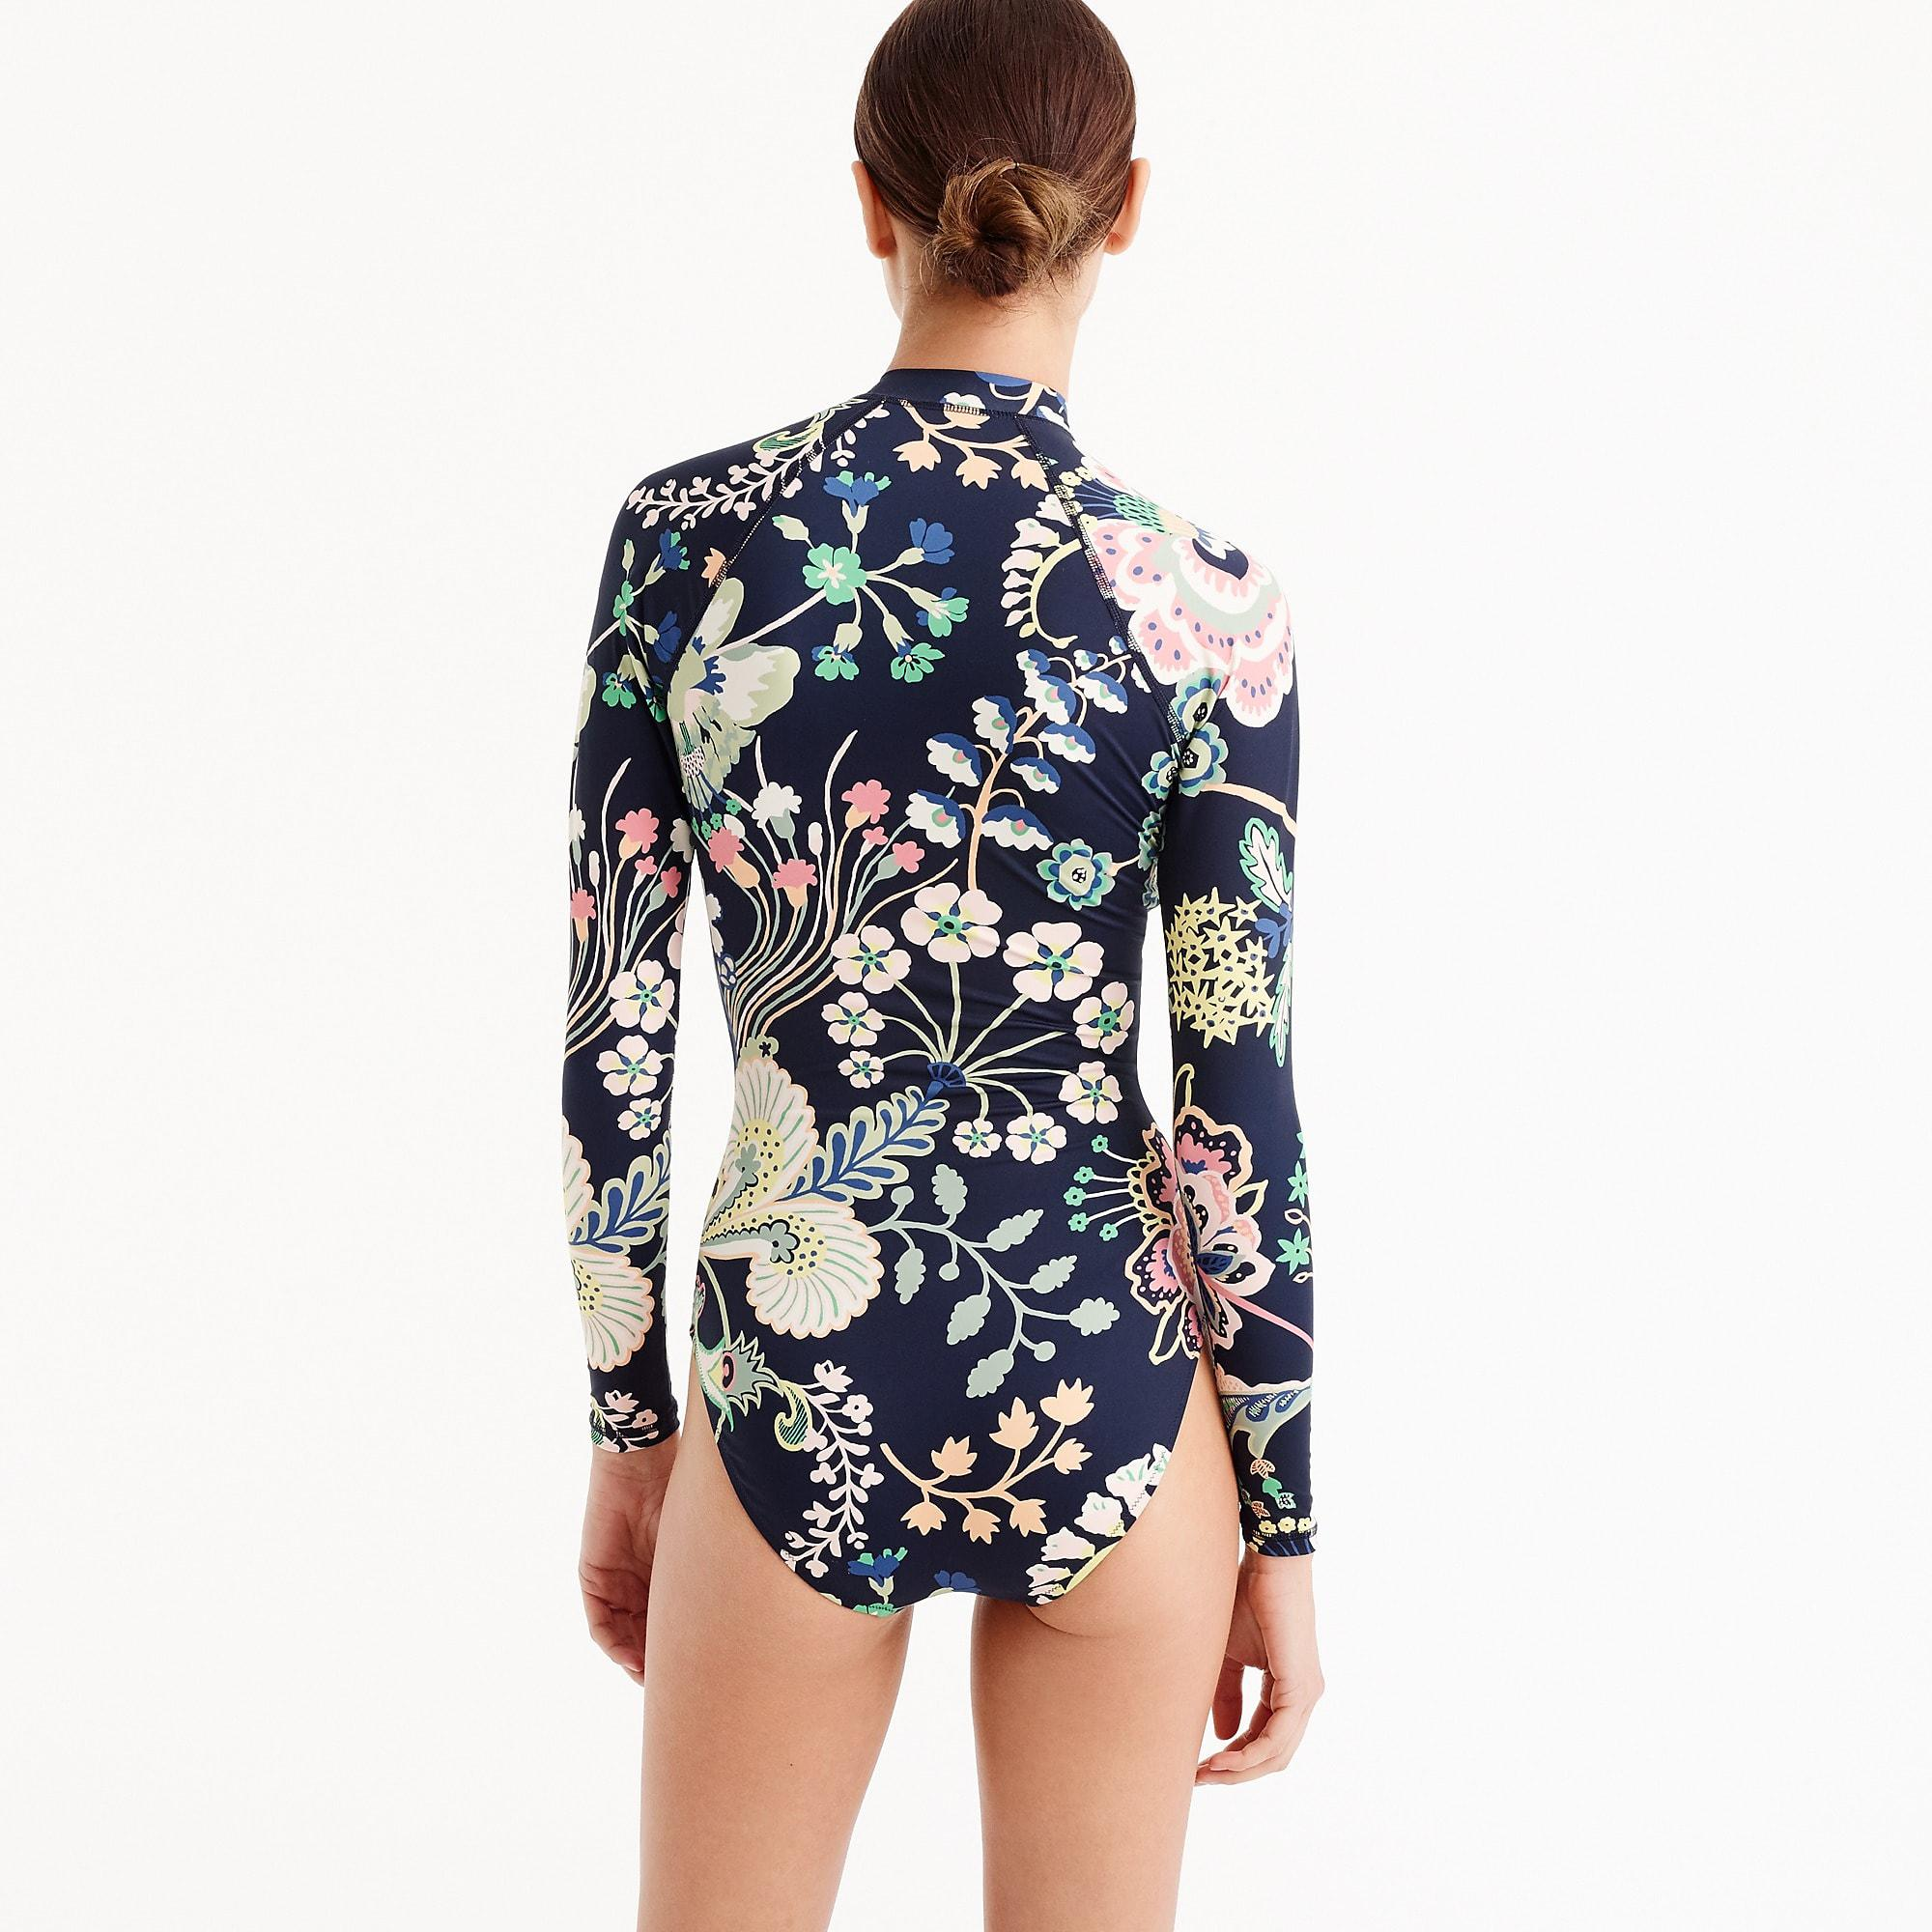 754e6b4489 J.Crew Zip-up Long-sleeve Swimsuit In Liberty Floral Symphony in ...